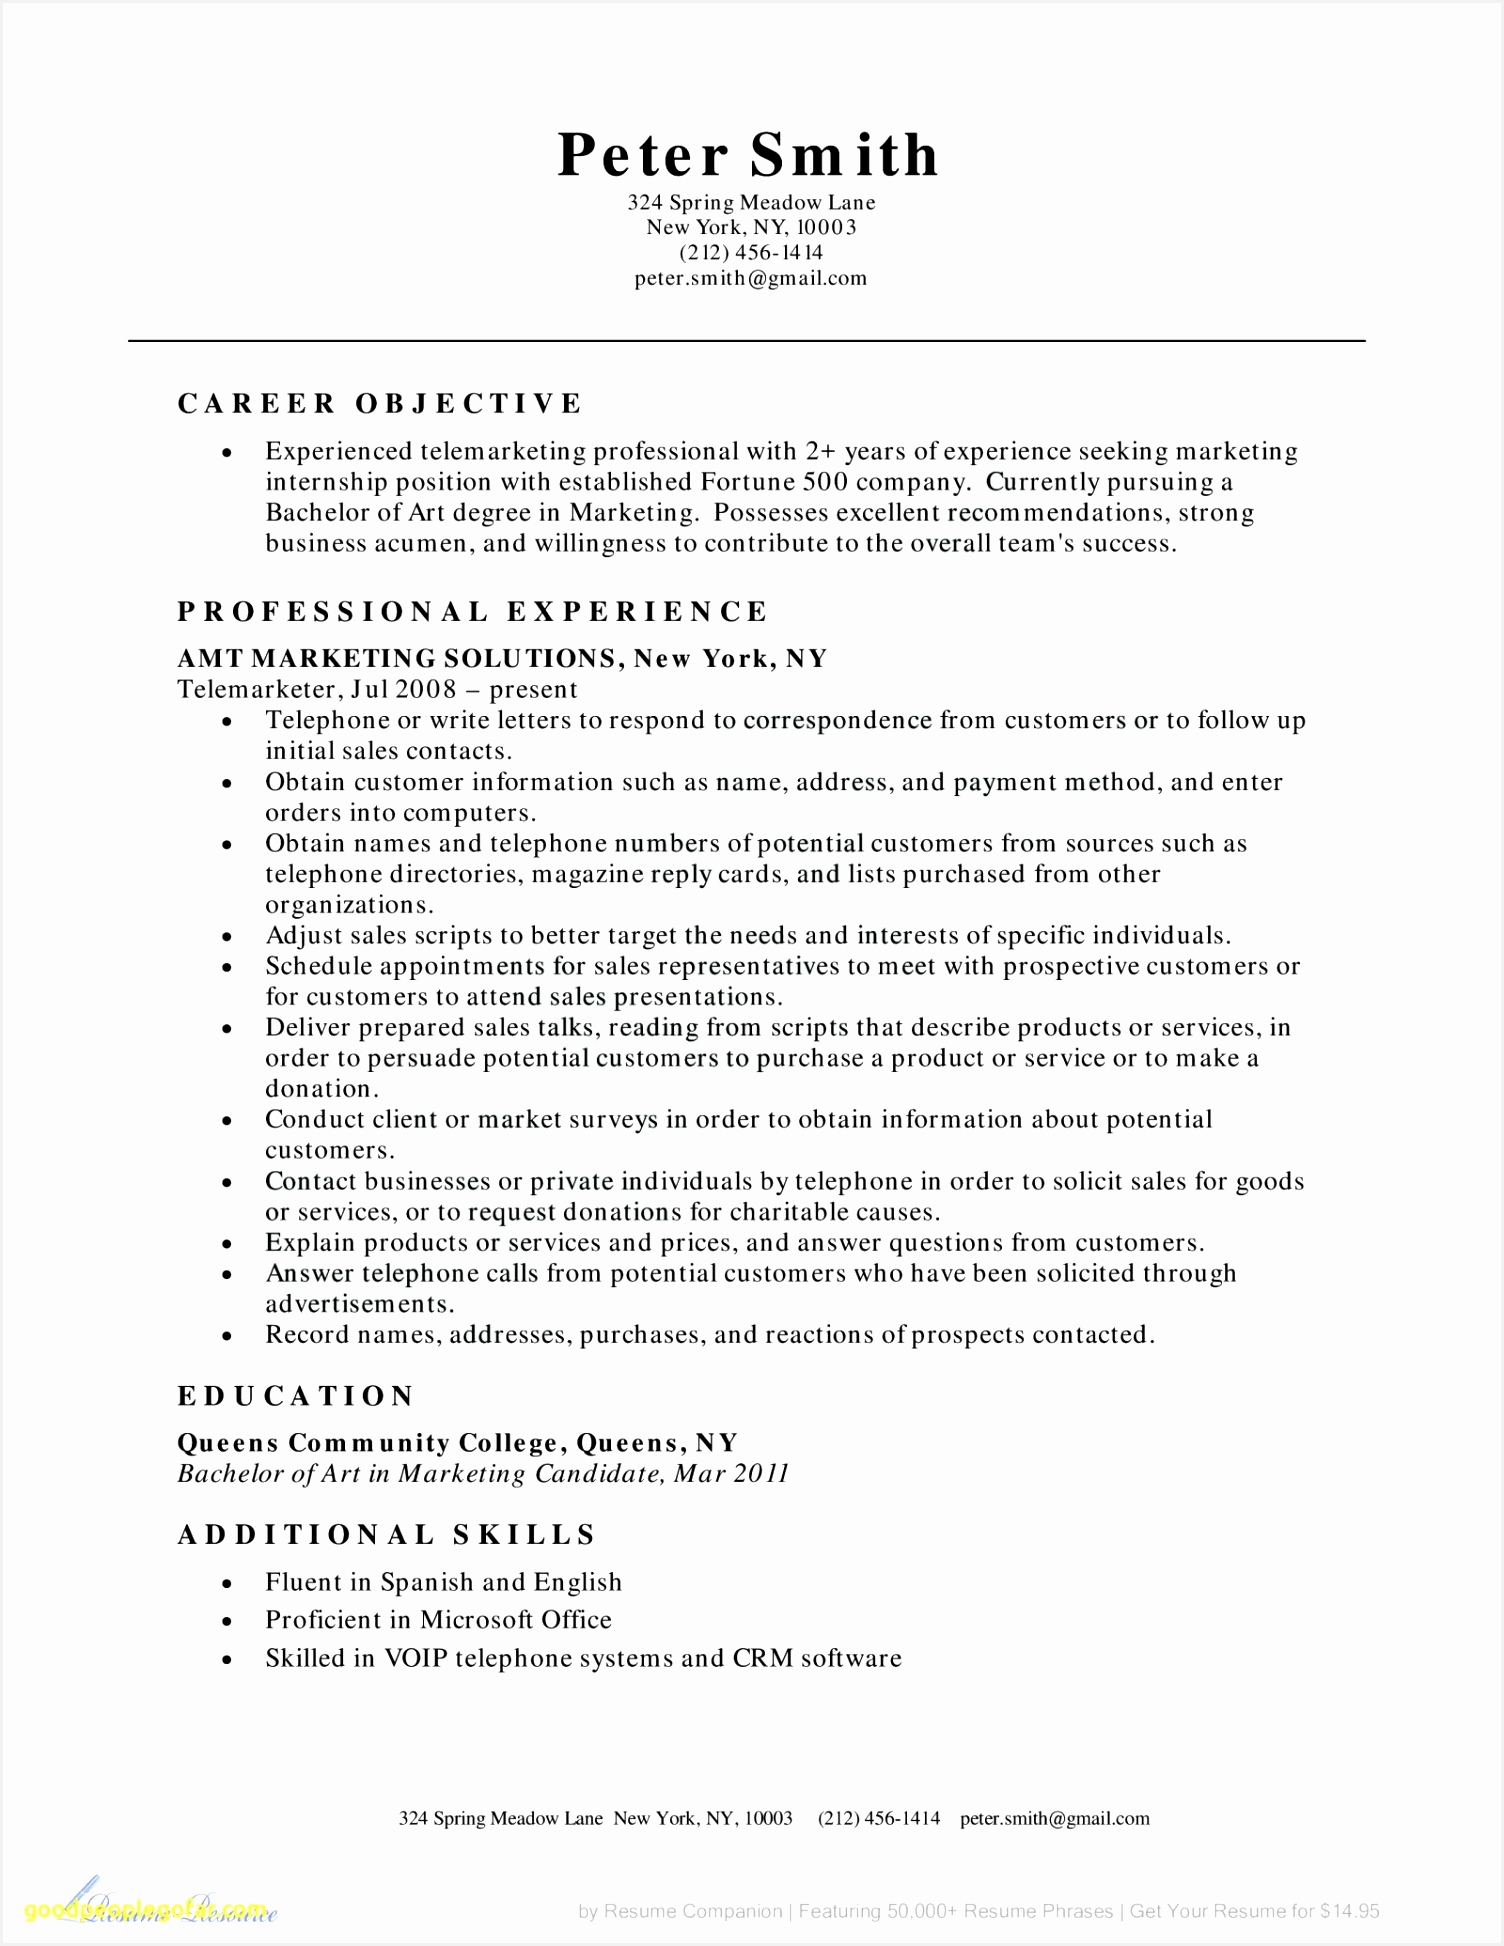 Sample Resumes for Lawyers X9nvy Elegant Resume Examples for A Lawyer Awesome Template Fresh E Cv Download Of 4 Sample Resumes for Lawyers